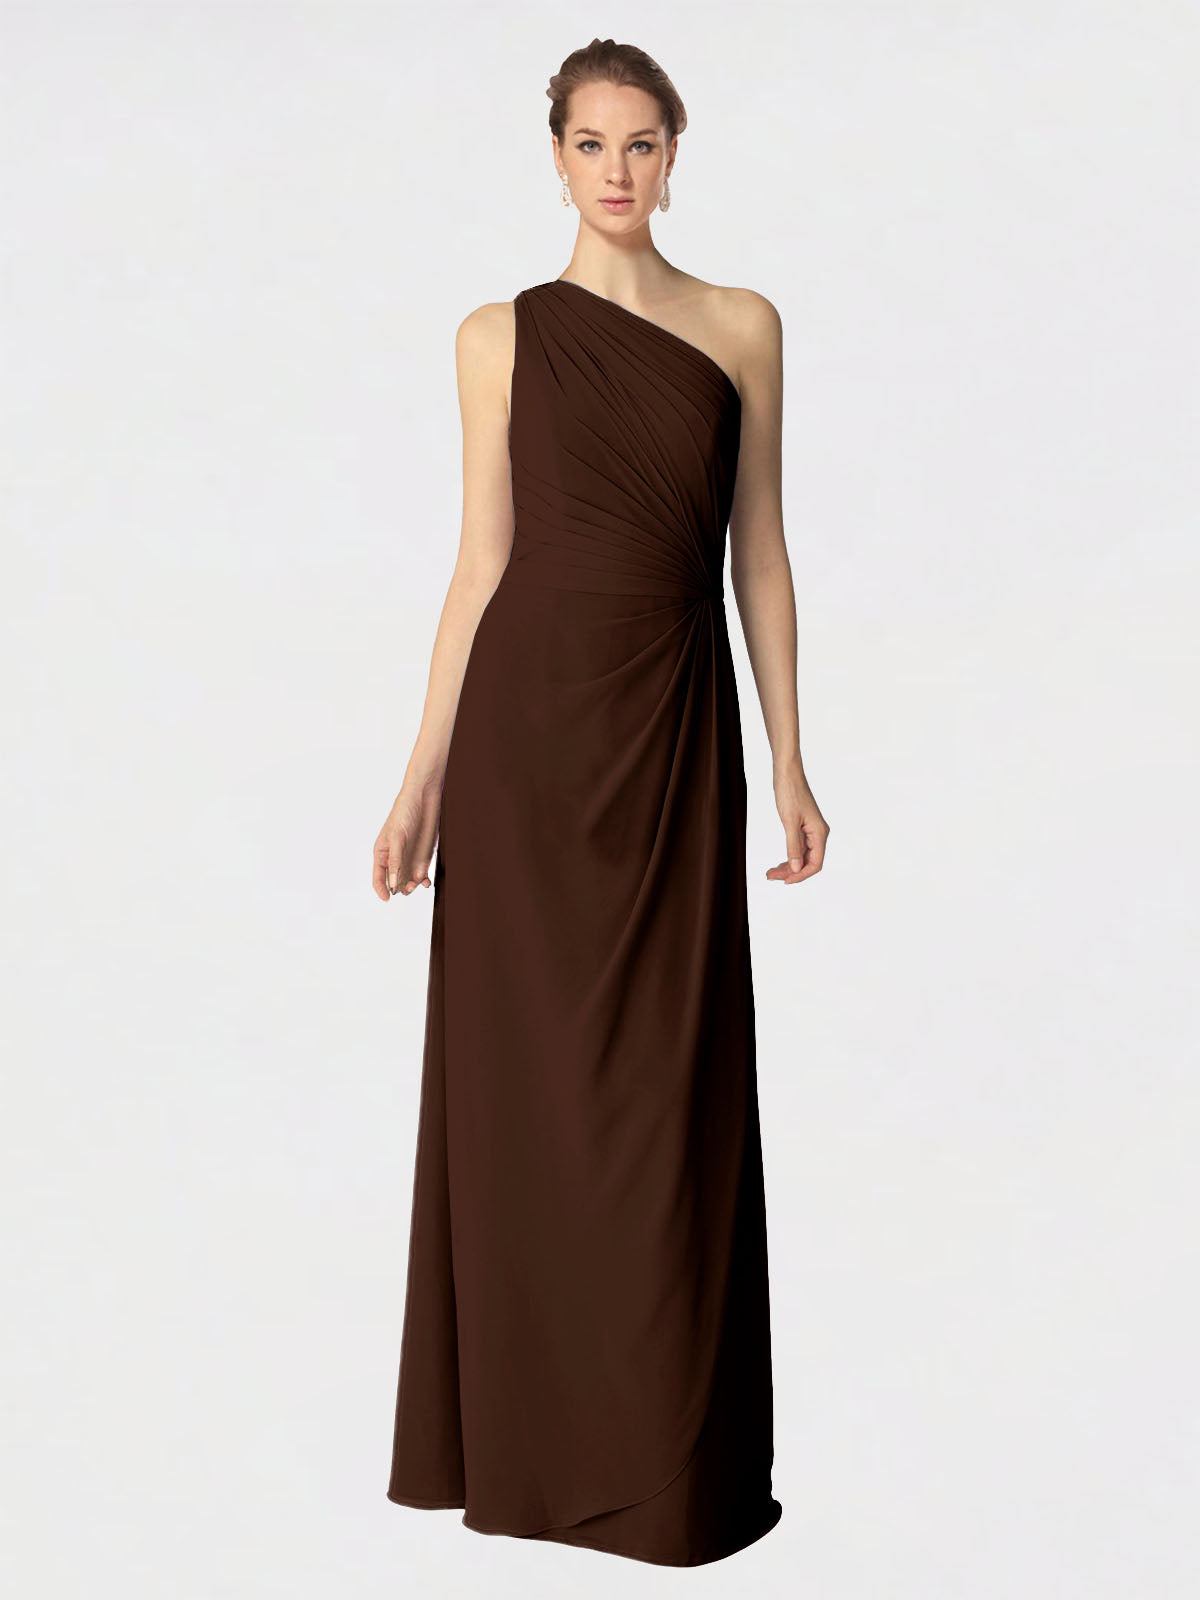 Long A-Line One Shoulder Sleeveless Chocolate Chiffon Bridesmaid Dress Aurora